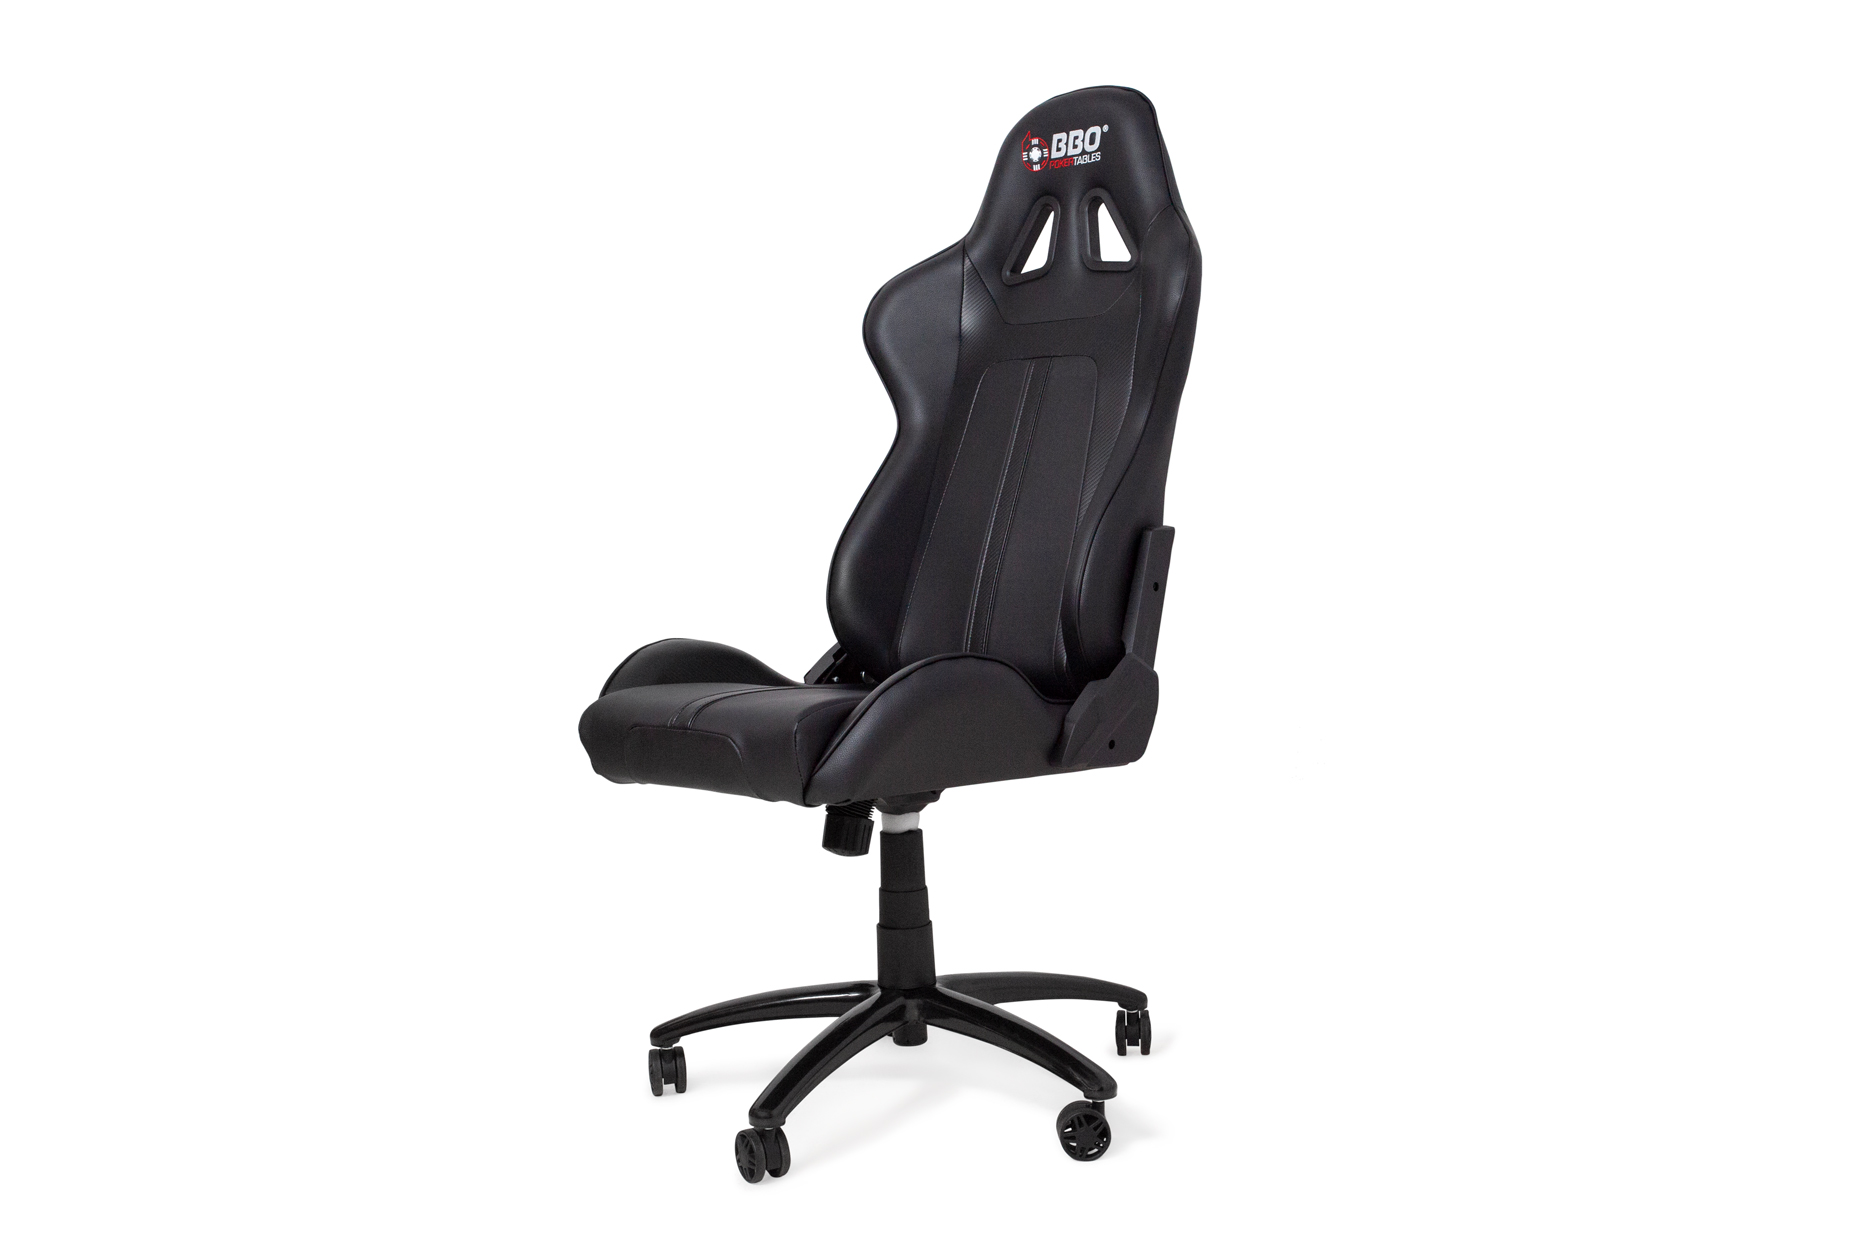 Showdown Pro Poker Gaming Chair (3)